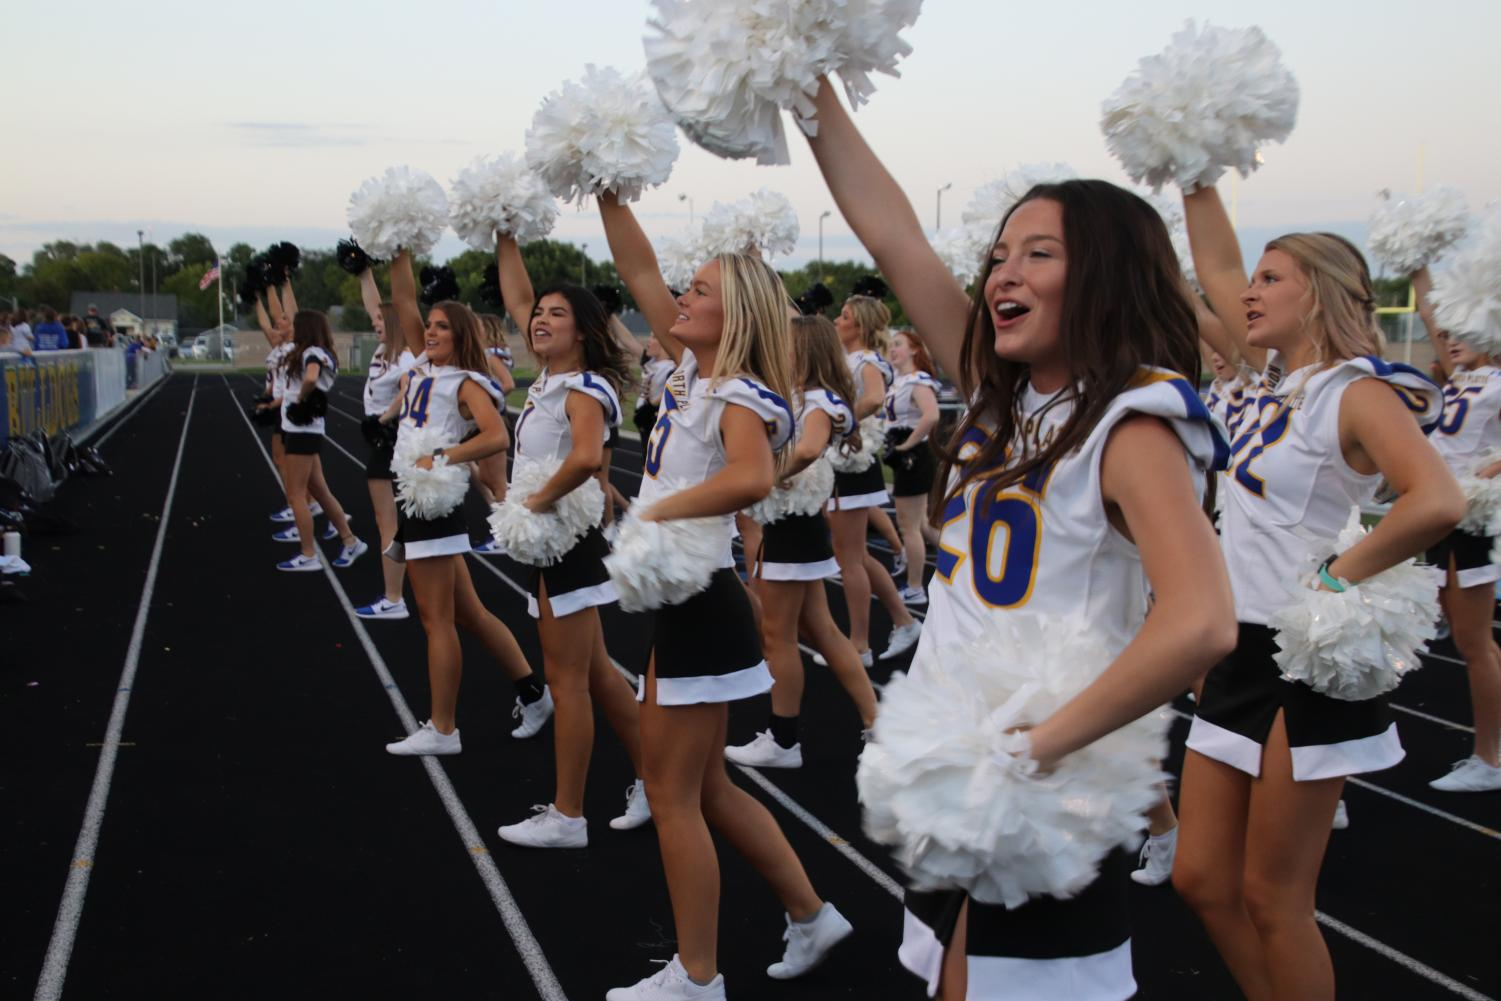 The Complete Cheerleading Controversy